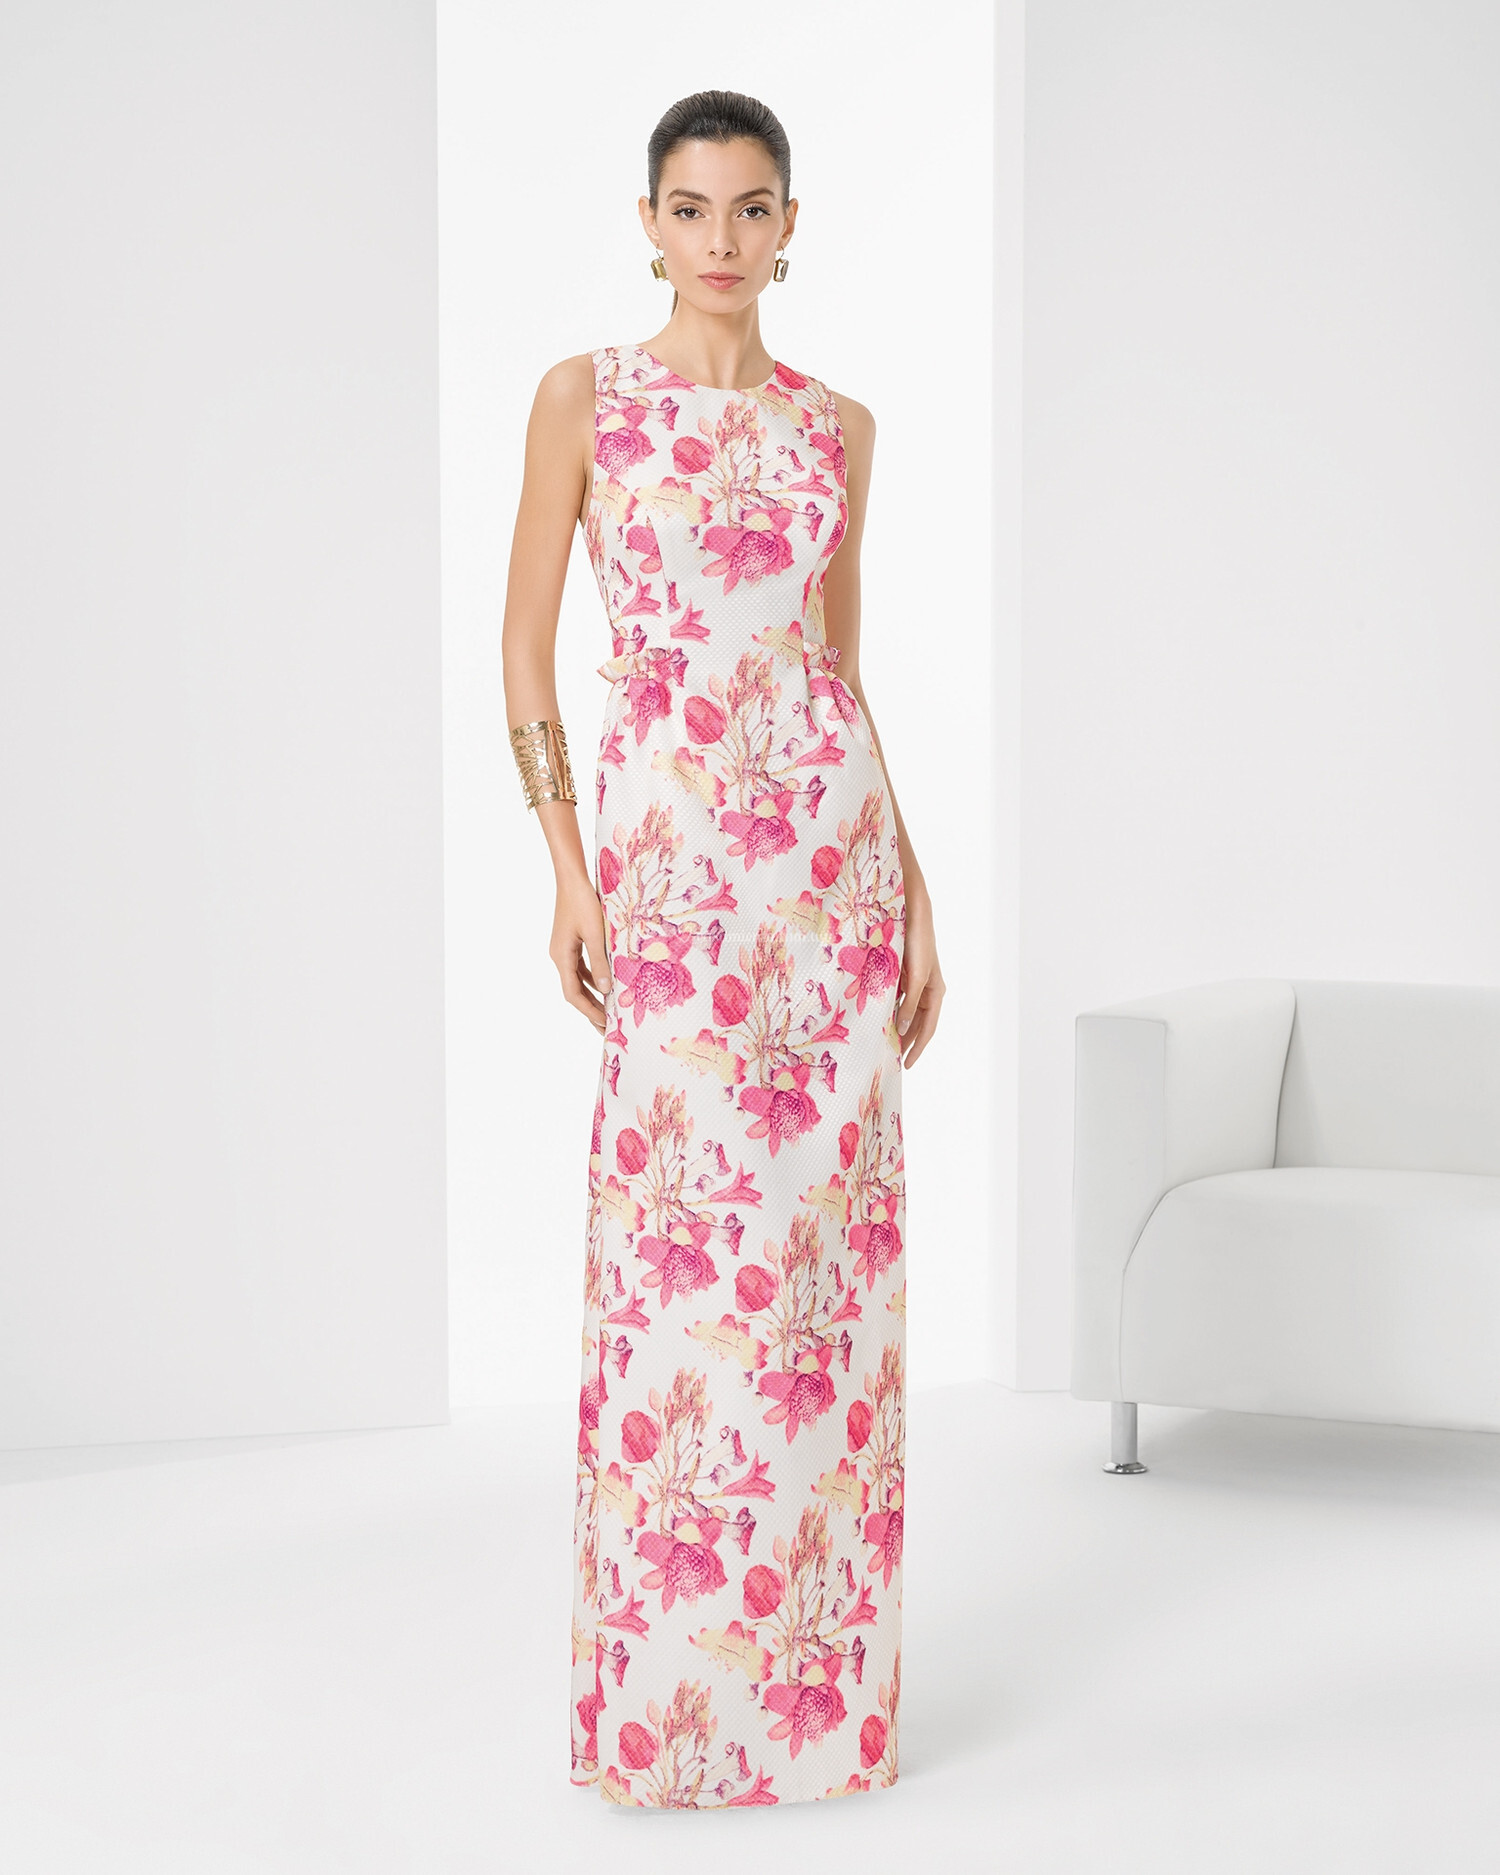 Dorable Vestido De Novia De Color Rosa Camo Ideas Ornamento ...